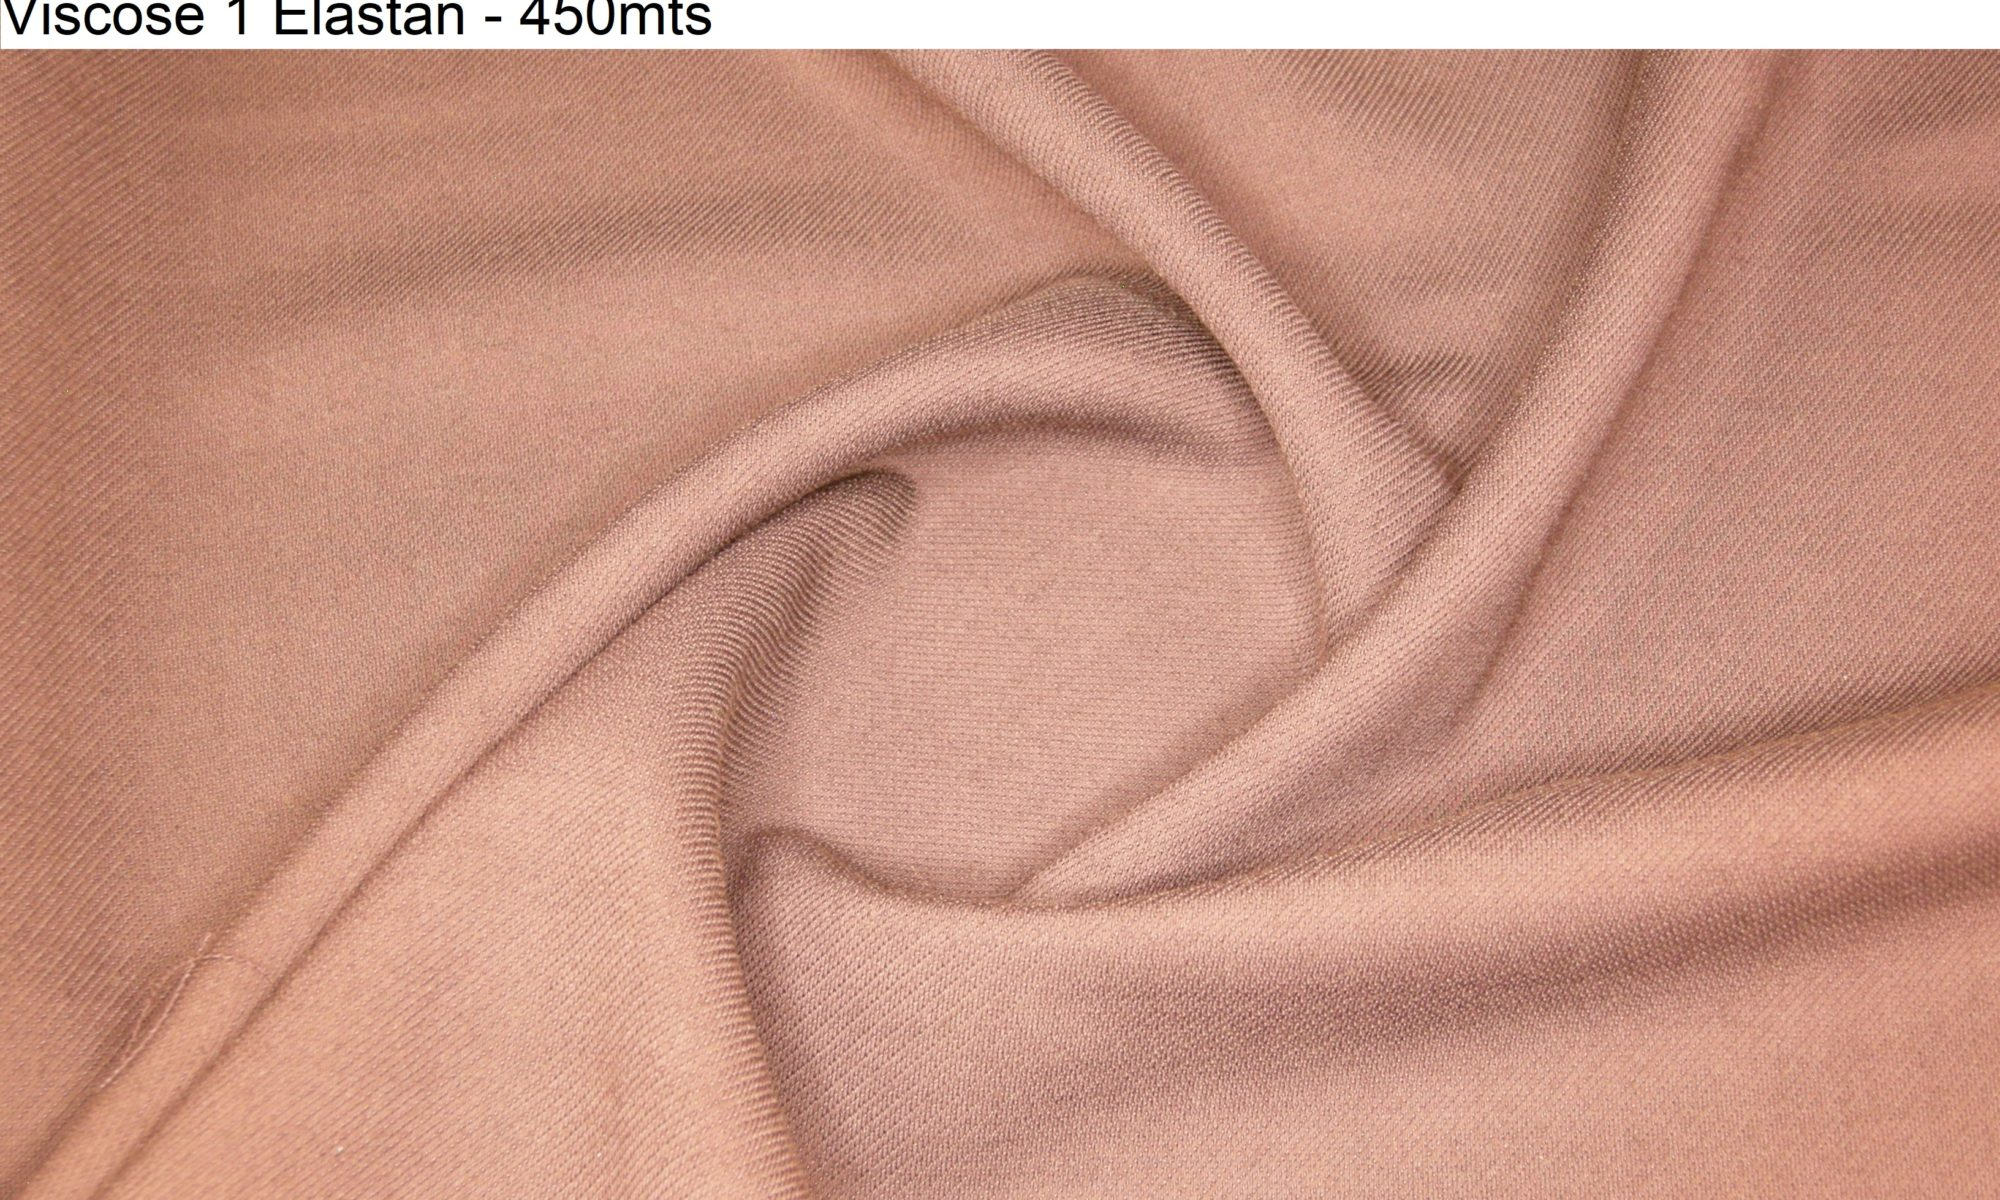 7715 burgundy wool viscose twill stretch jacket trousers fabric WIDTH cm132 WEIGHT gr380 - gr287 square meter - COMPOSITION 21 Wool 78 Viscose 1 Elastan - 450mts